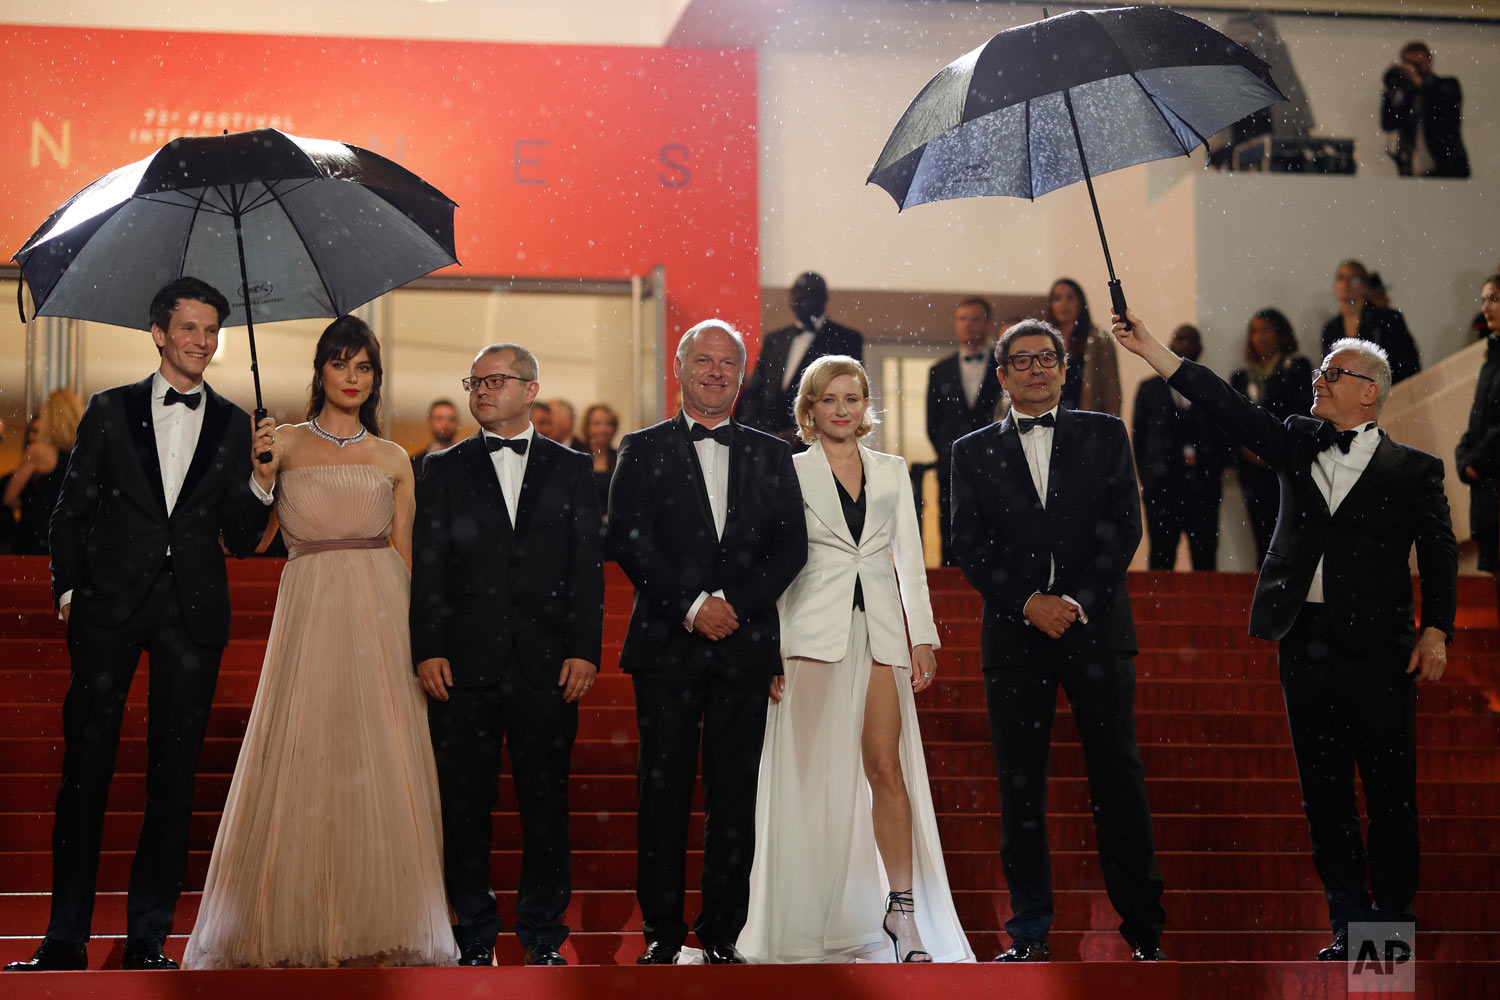 Actors Sabin Tambrea, Catrinel Marlon, director Corneliu Porumboiu, actors Vlad Ivanov, Rodica Lazar, Agusti Villaronga and Cannes film festival president Thierry Fremaux pose for photographers upon arrival at the premiere of the film 'The Whistlers' at the 72nd international film festival, Cannes, southern France, May 18, 2019. (AP Photo/Petros Giannakouris)